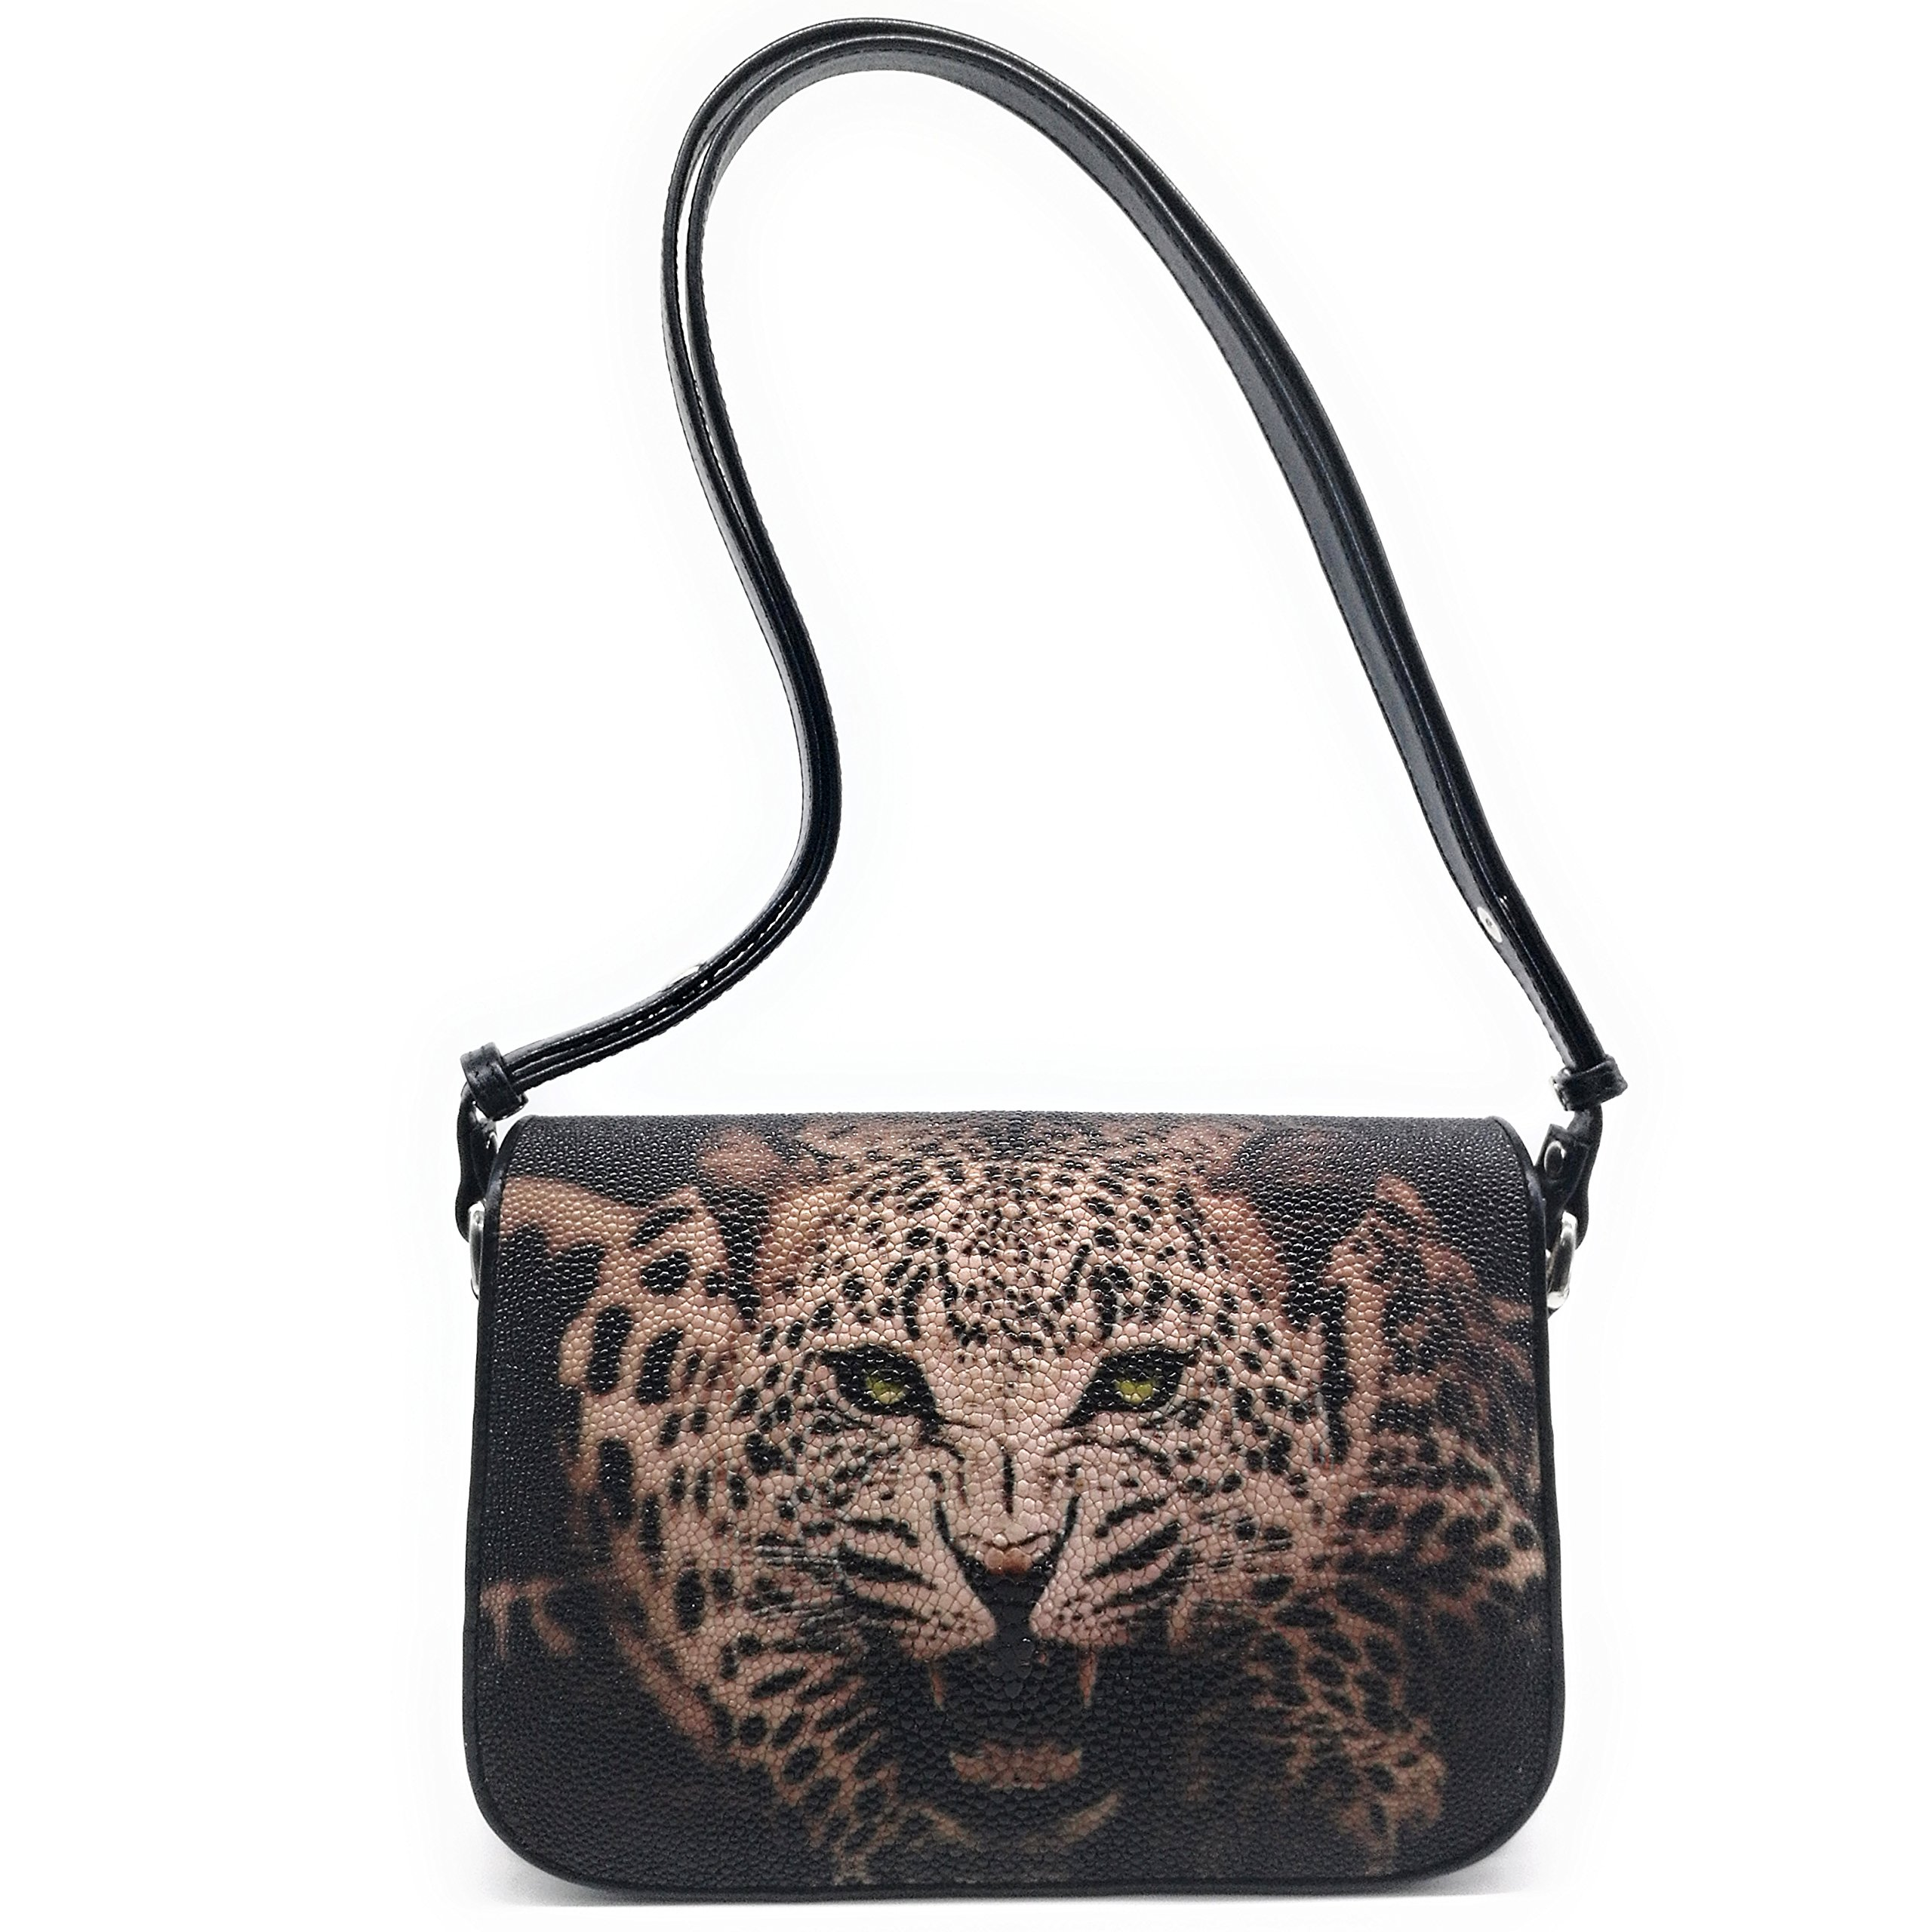 Stingray Genuine Leather Shoulder Bag Woman Smart Style Nice Looking Size 24 x 7.5 x 17 cm. (Action Tiger)